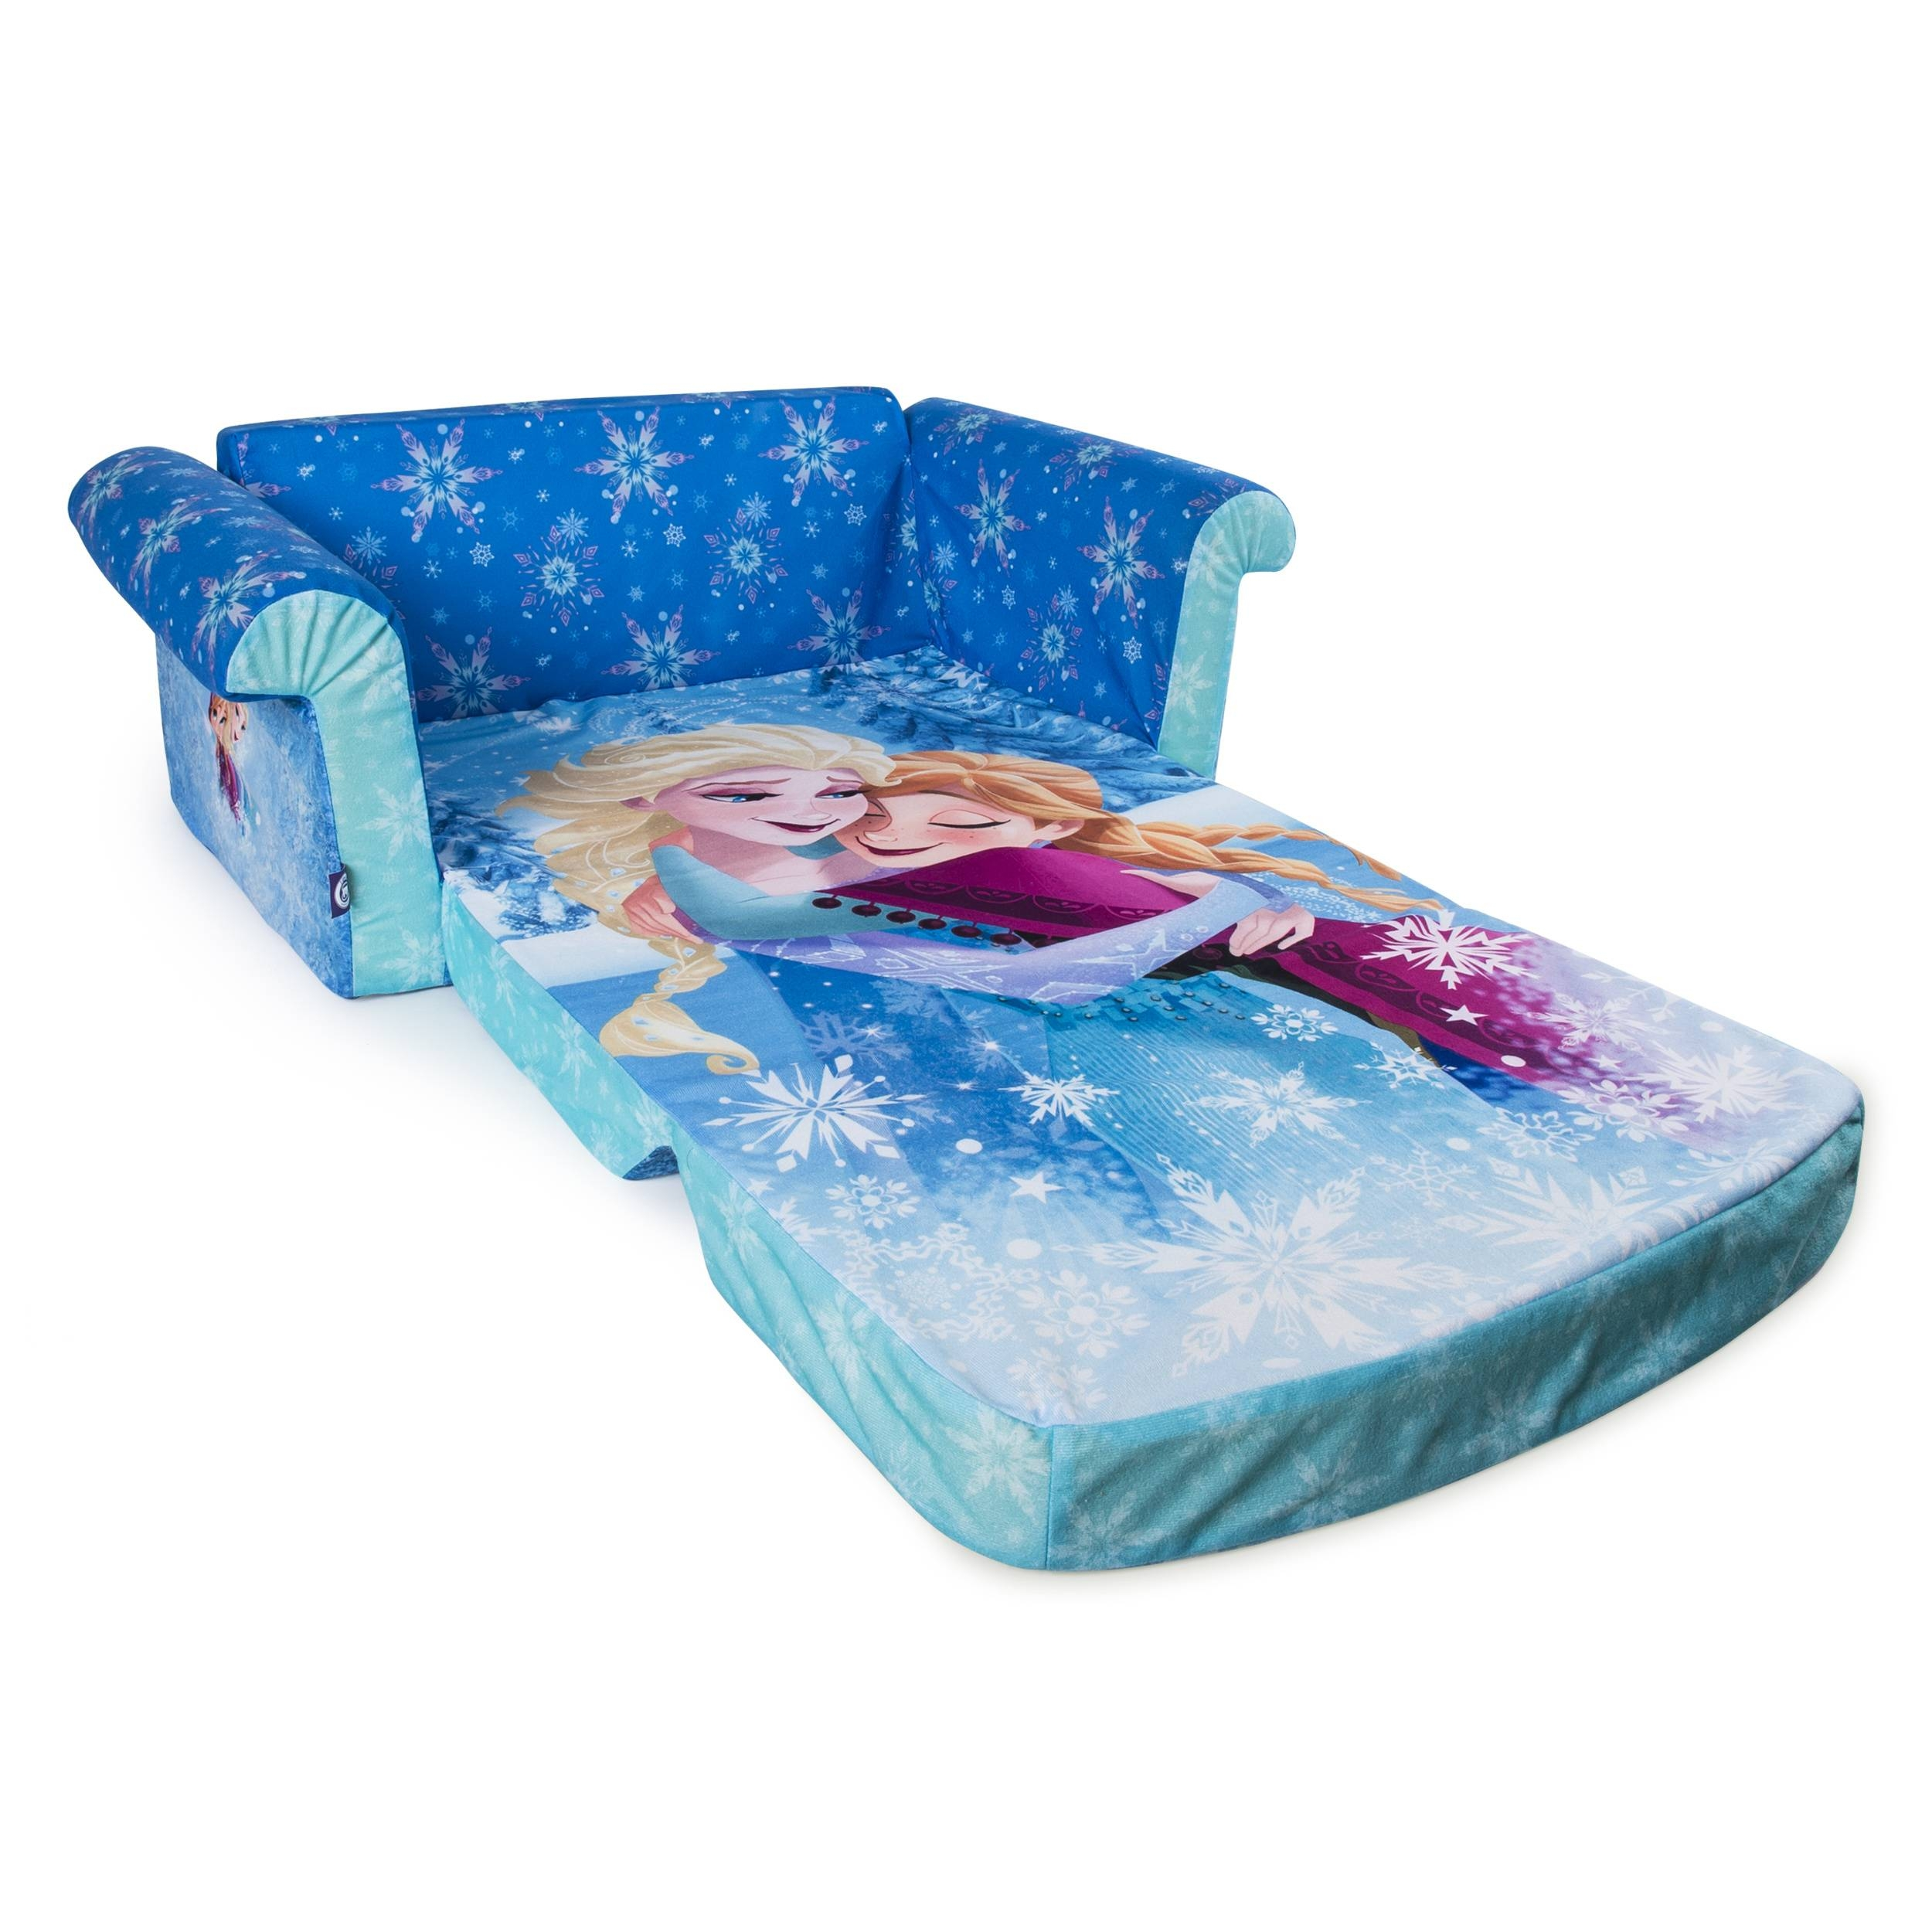 Marshmallow Furniture, Children's 2 In 1 Flip Open Foam Sofa Throughout Disney Sofas (Photo 12 of 15)